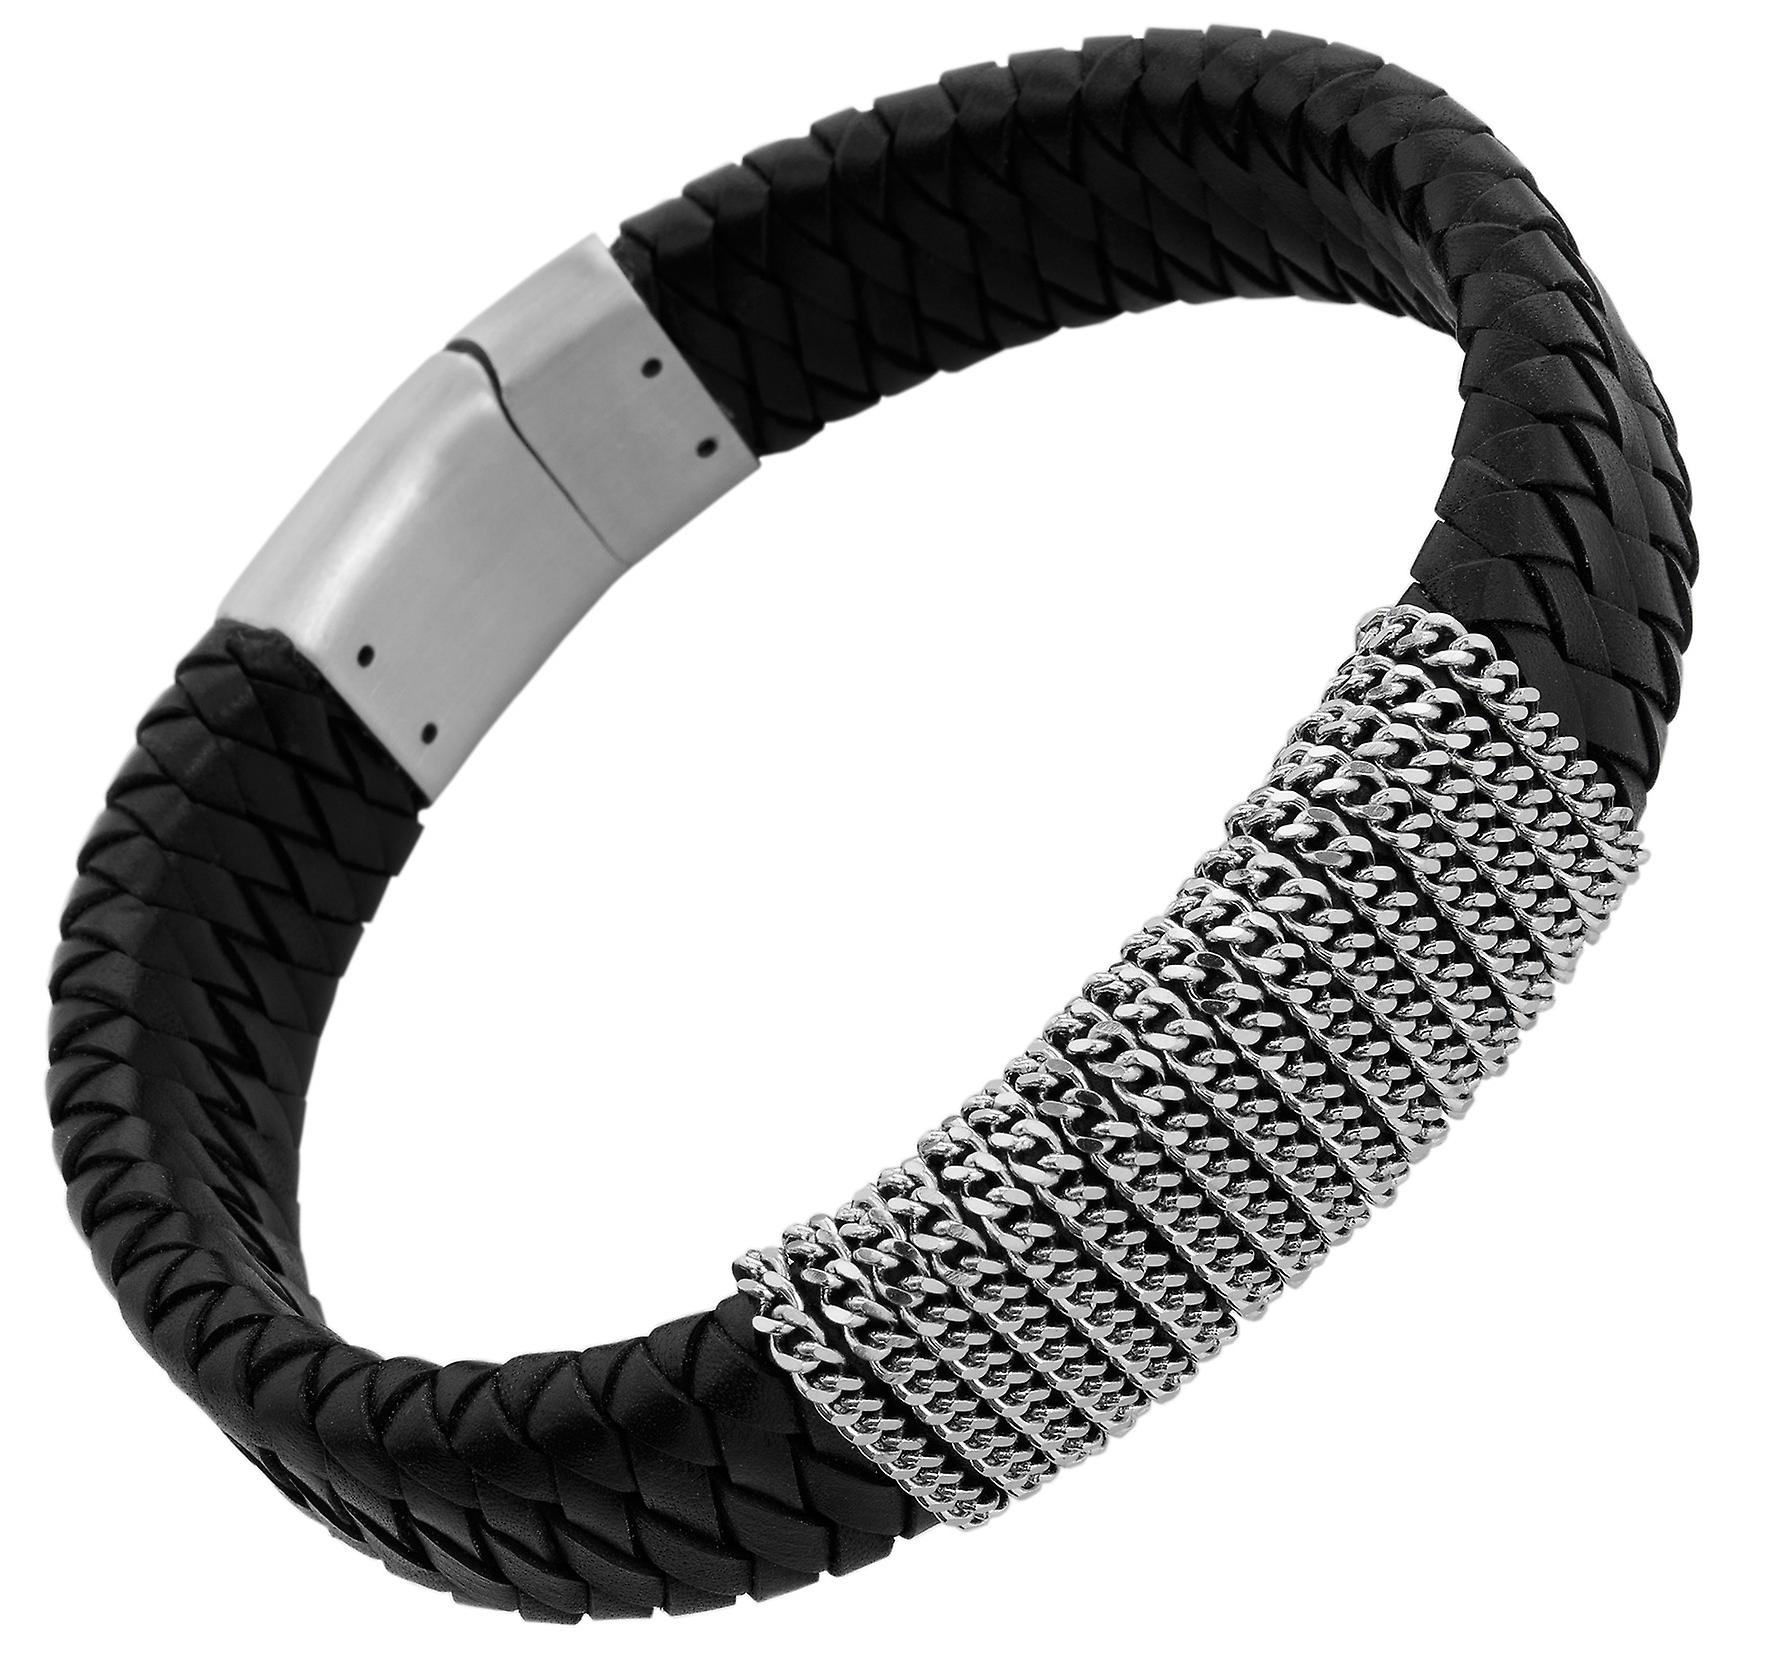 Burgmeister Leather bracelet, JBM4007-755